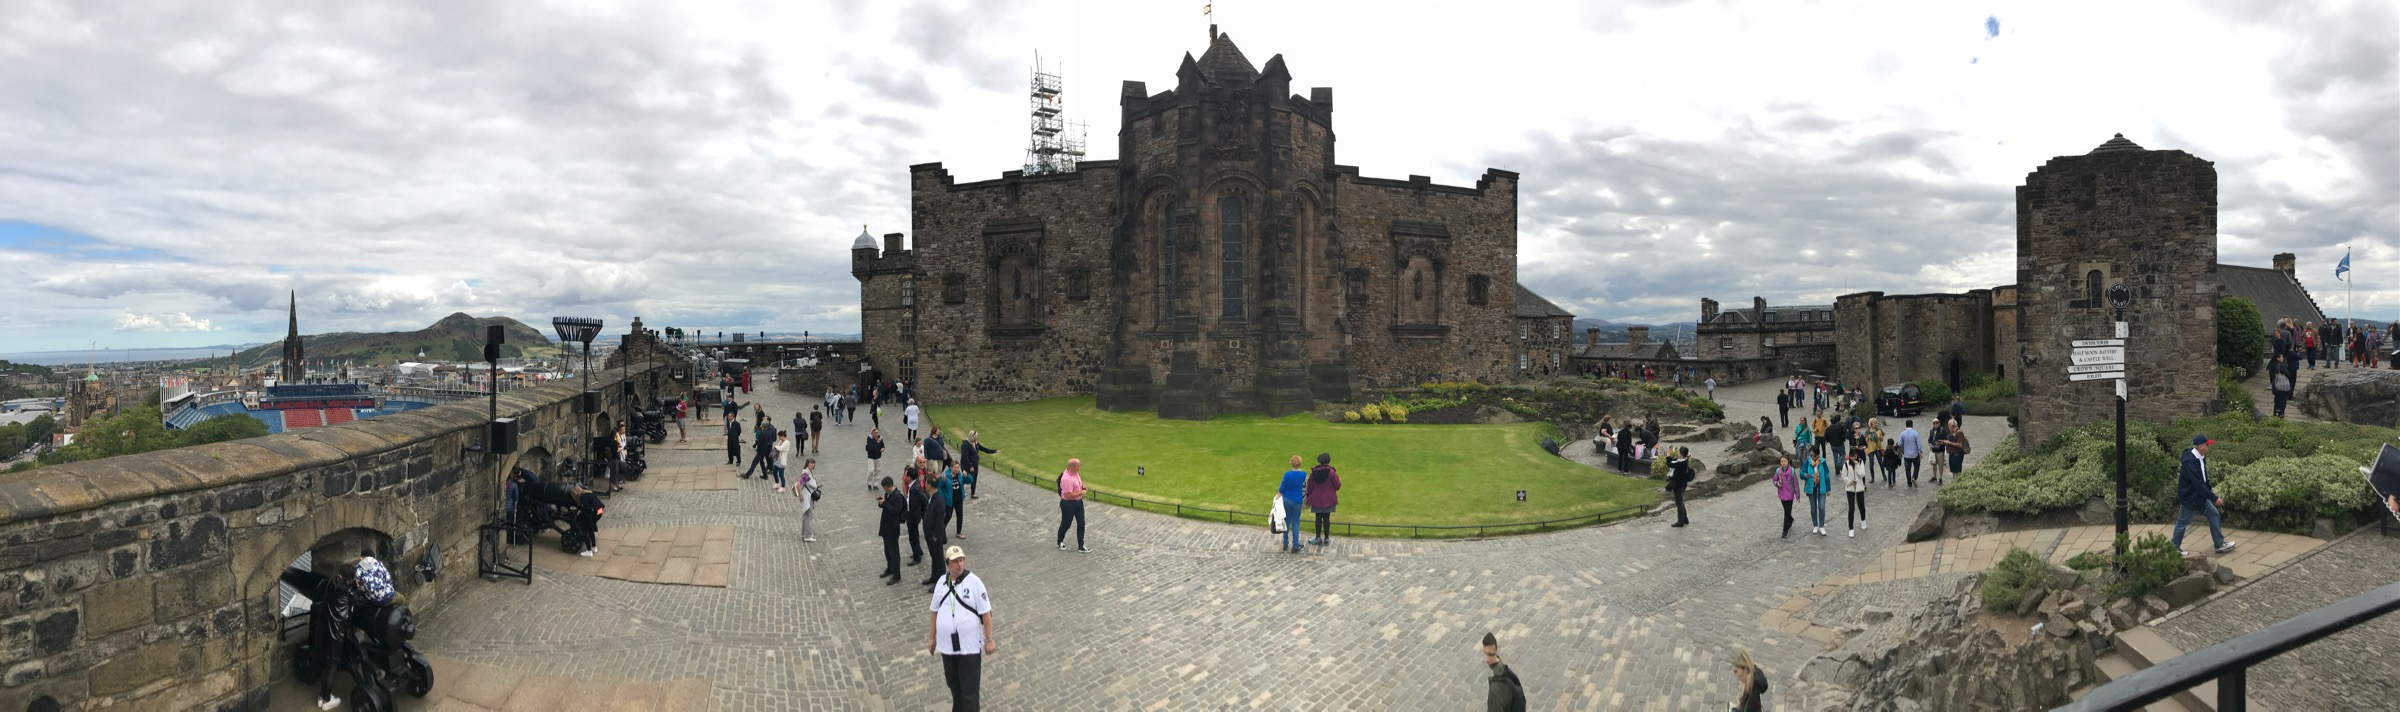 The inside of Edinburgh Castle.